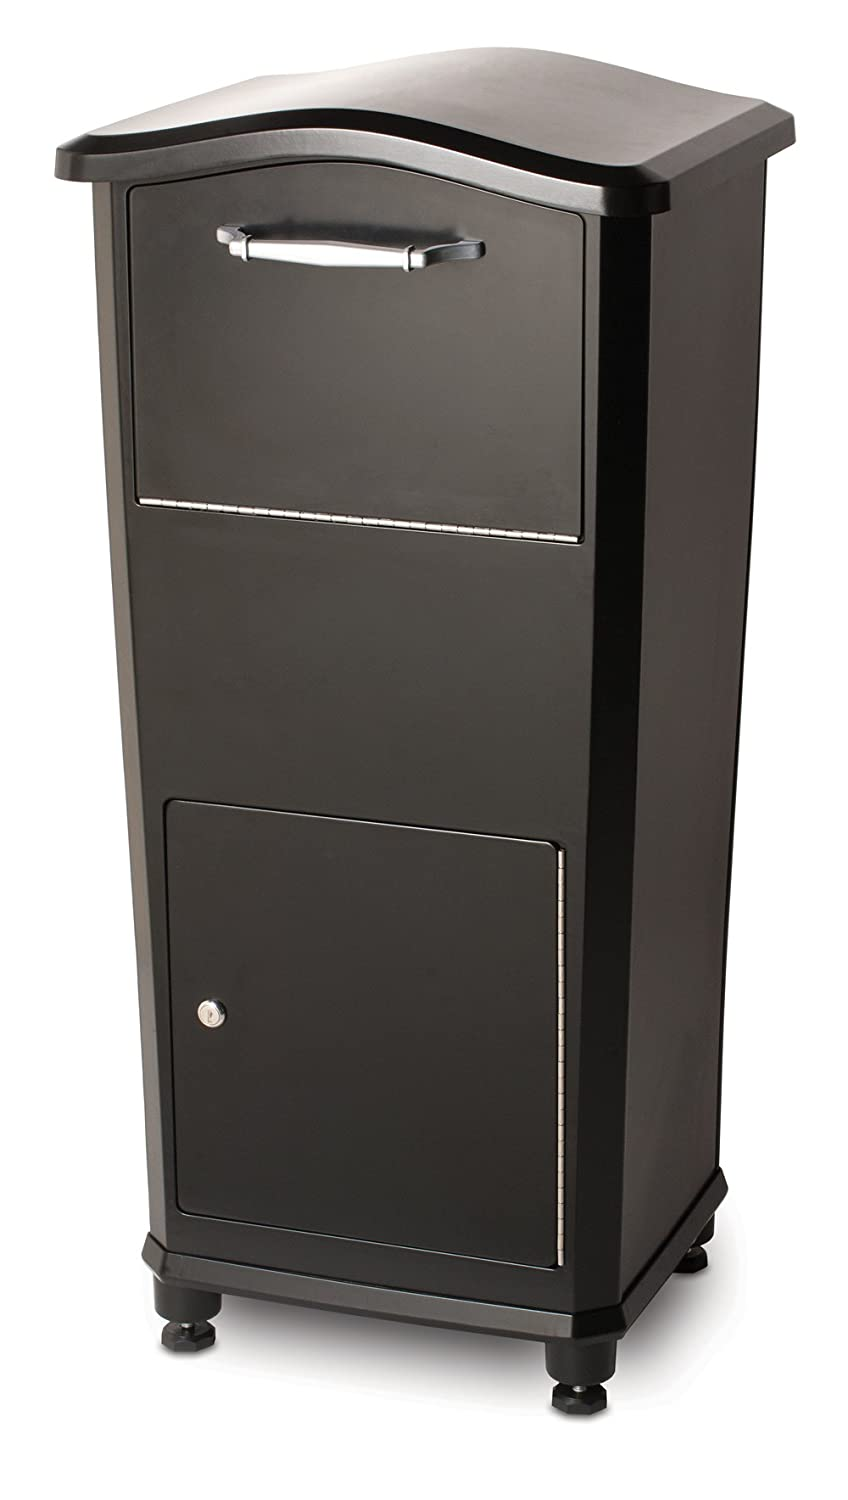 elephantrunk Parcel Drop Box Black Architectural Mailboxes 6900B